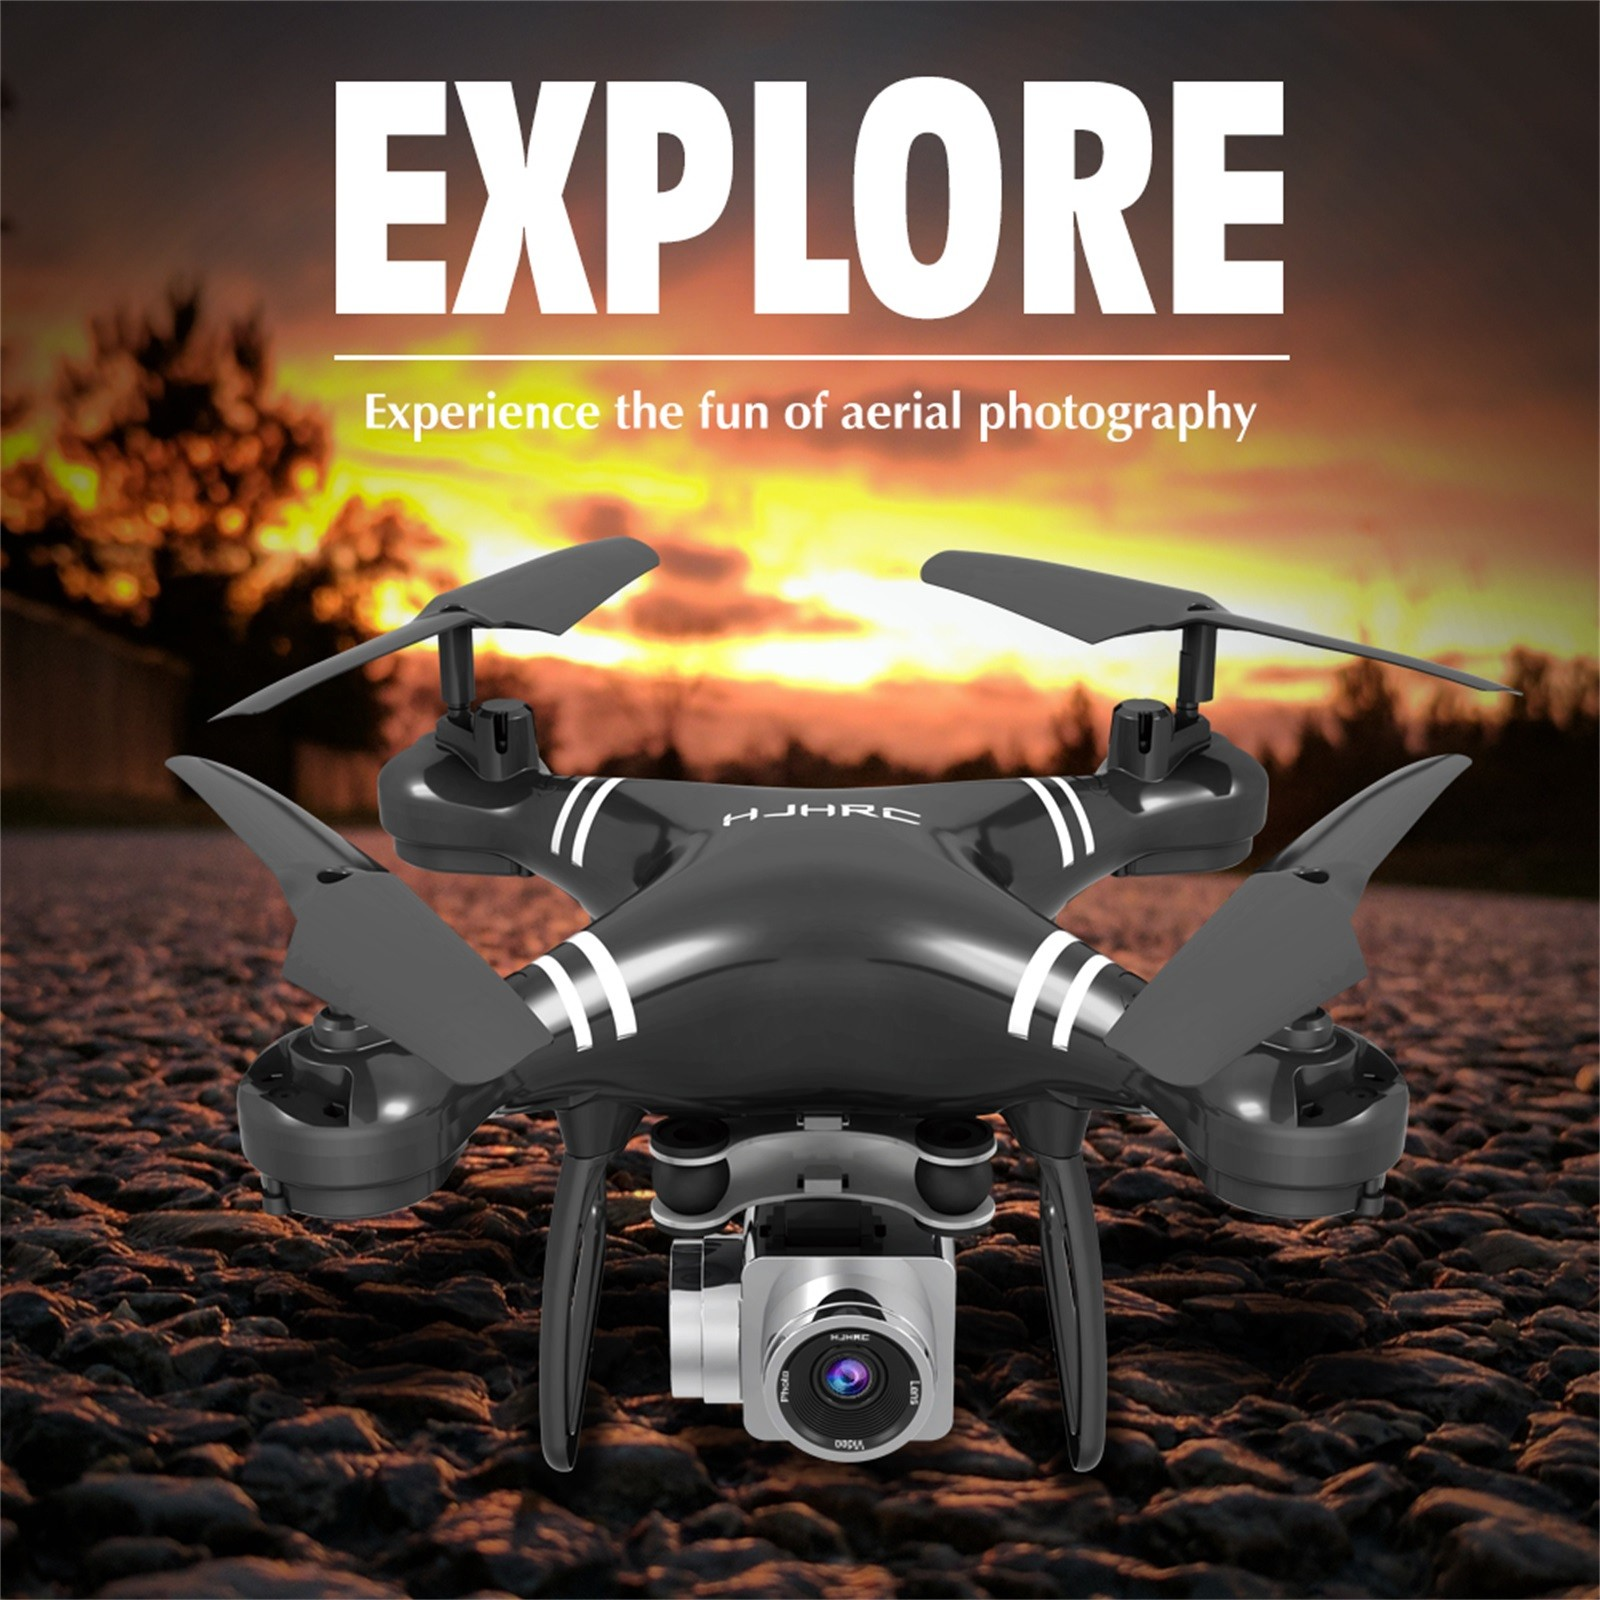 H03e54f1631d544919cb4e5f9e86166df2 - Hjhrc Four-axis Aerial Photography Aircraft Drone With Camera Hd 4k Wifi Fpv Foldable Drone Height Holding Headless Quadcopter